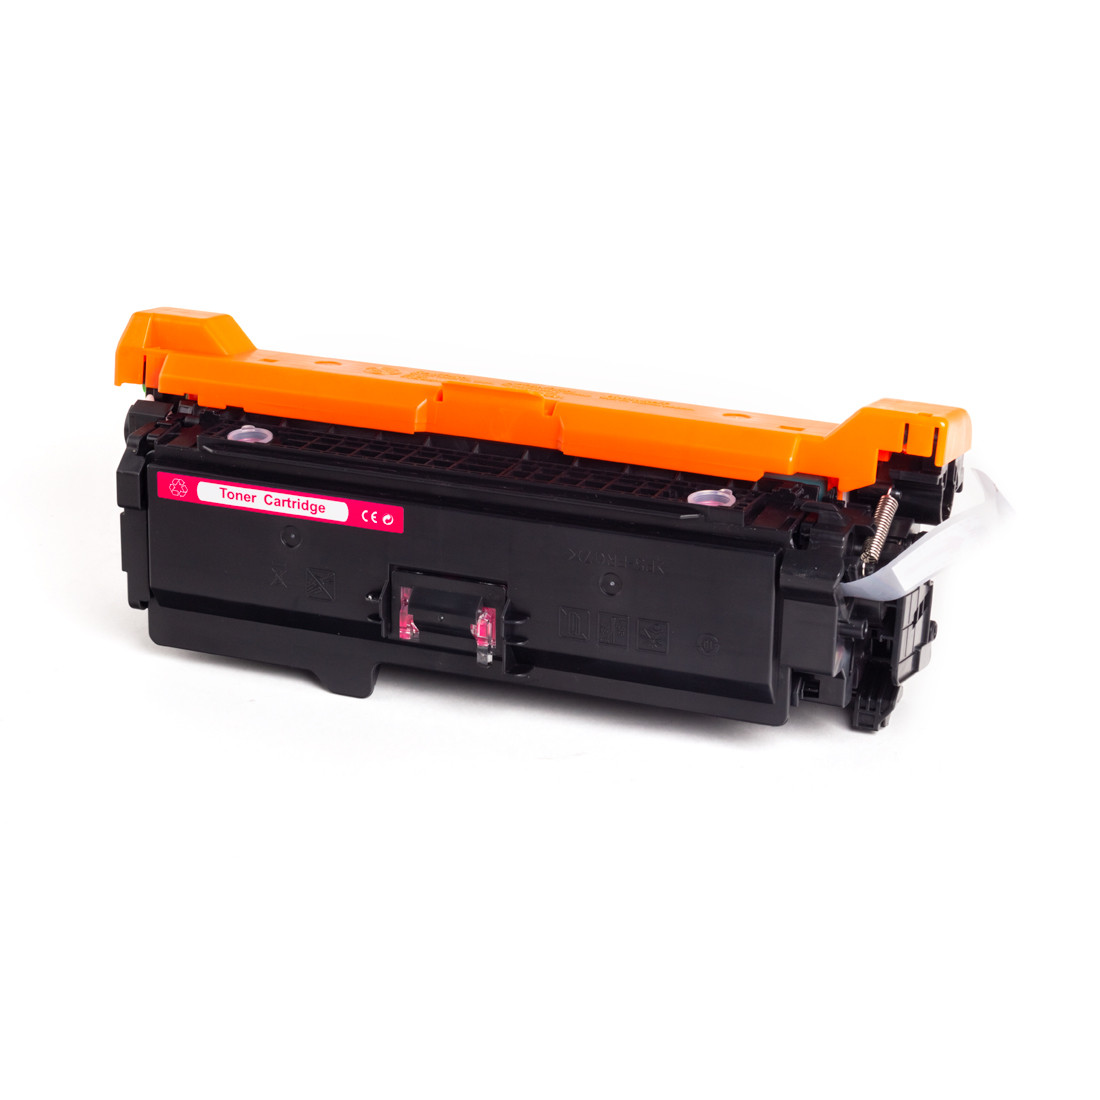 HP CE403A 507A Magenta Cartridge for Color LaserJet M551/MFP M570/MFP M575, up to 6000 pages.